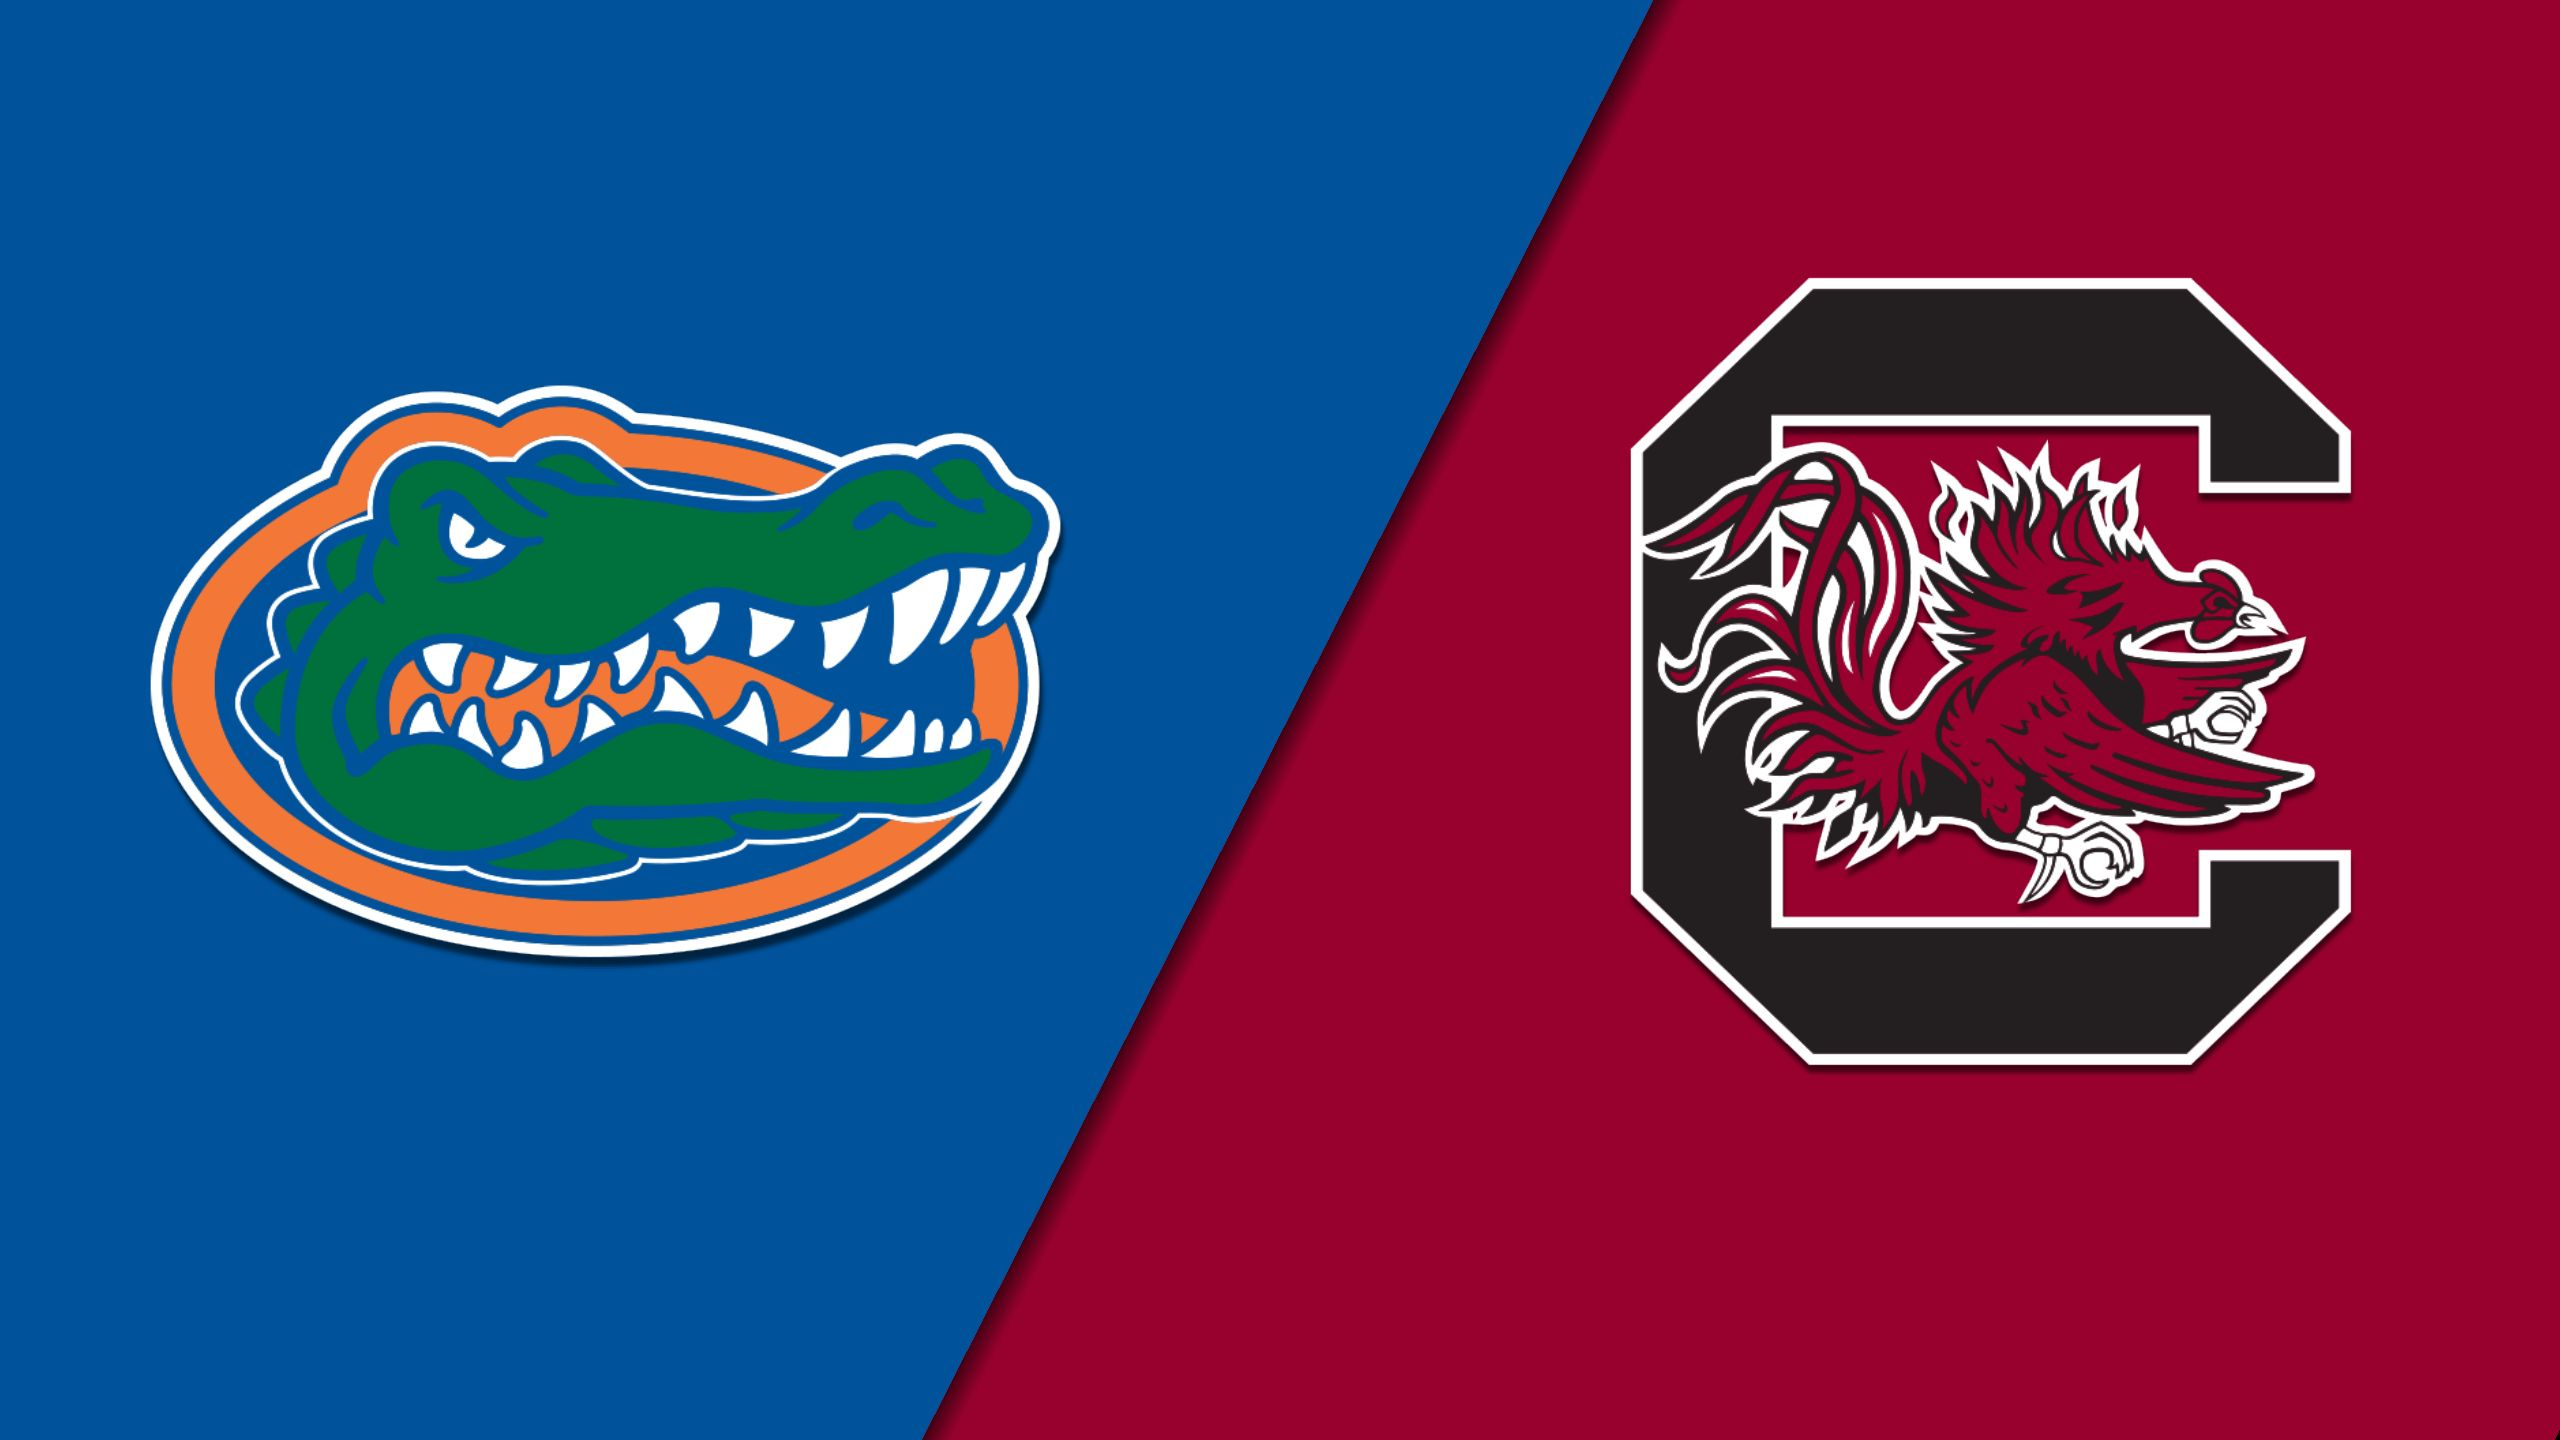 #2 Florida vs. South Carolina (Baseball)